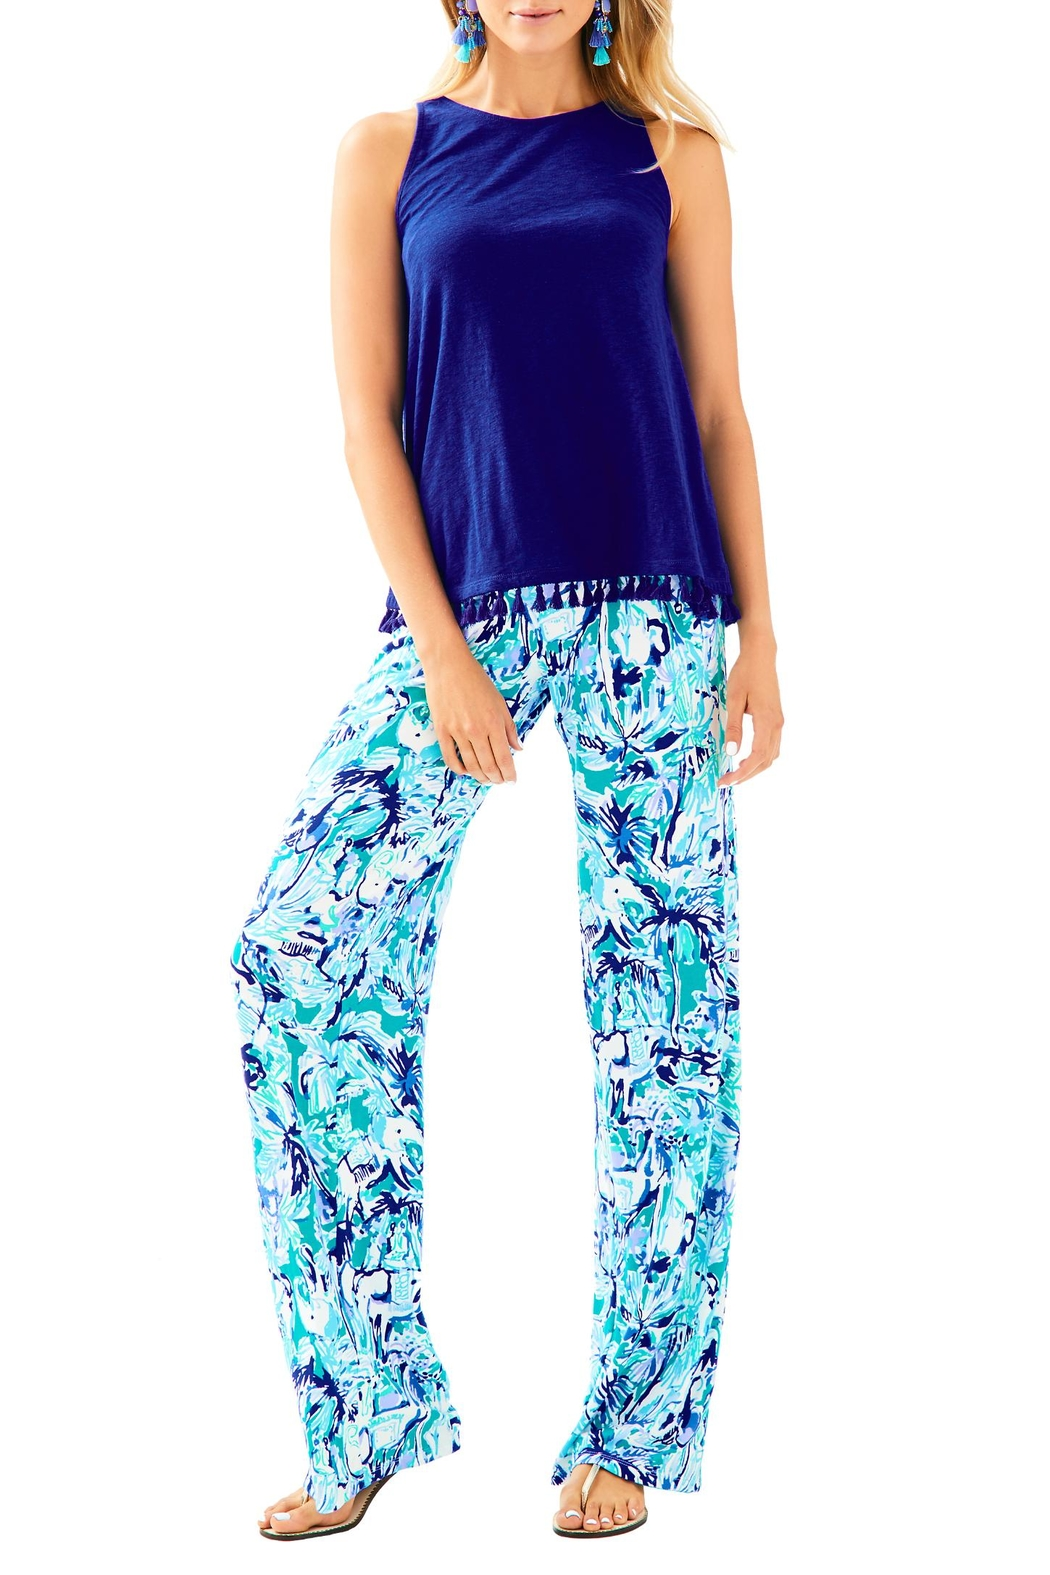 Lilly Pulitzer Lorena Palazzo Pant - Back Cropped Image